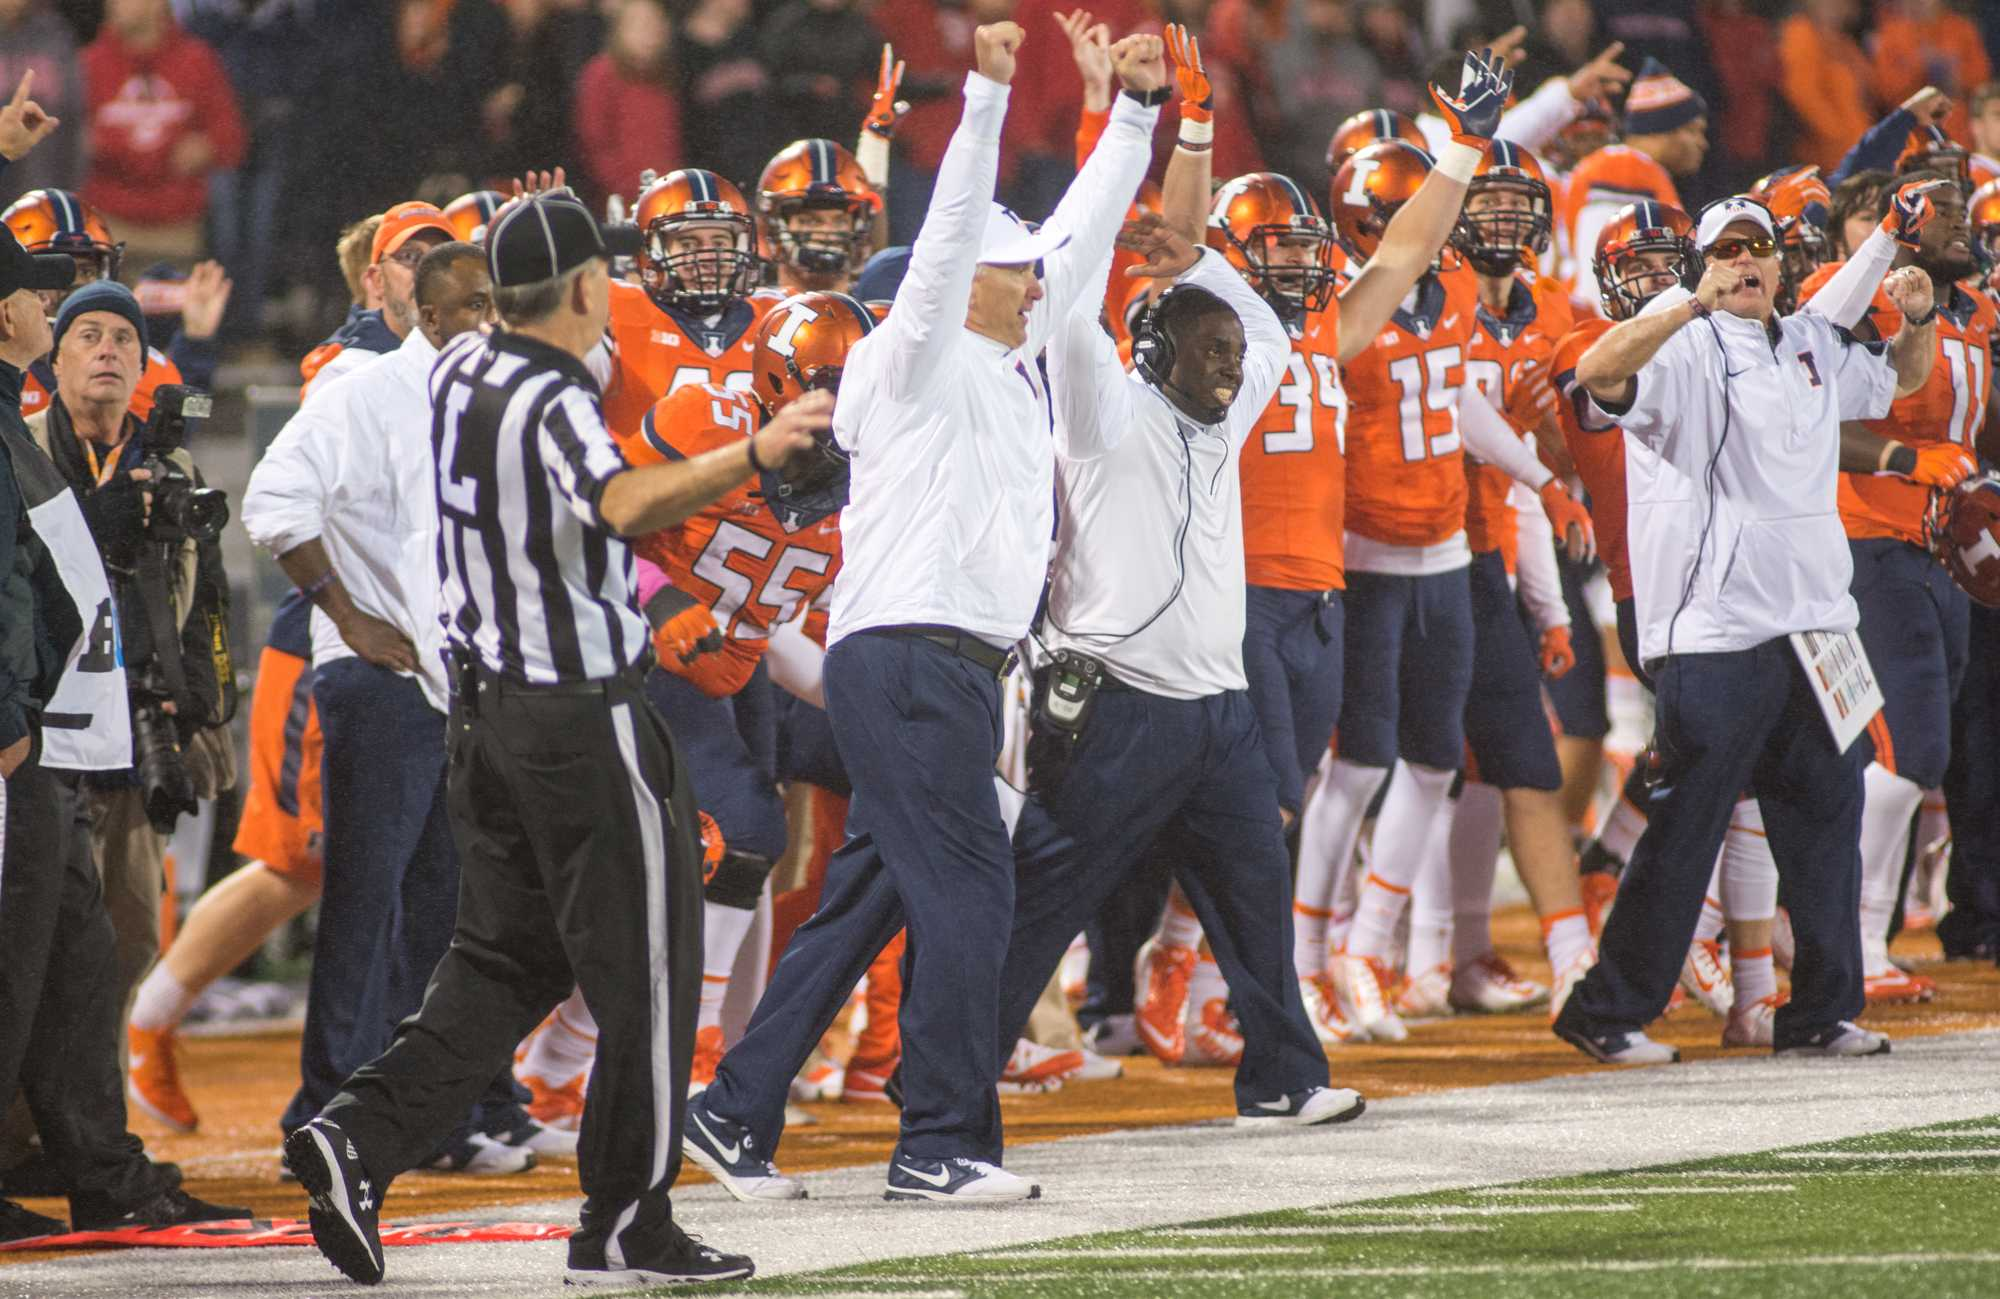 Head coach Bill Cubit and the Illinois sideline celebrate after Taylor Zalewski makes the PAT that put Illinois up 14-13 over Nebraska to win the game.